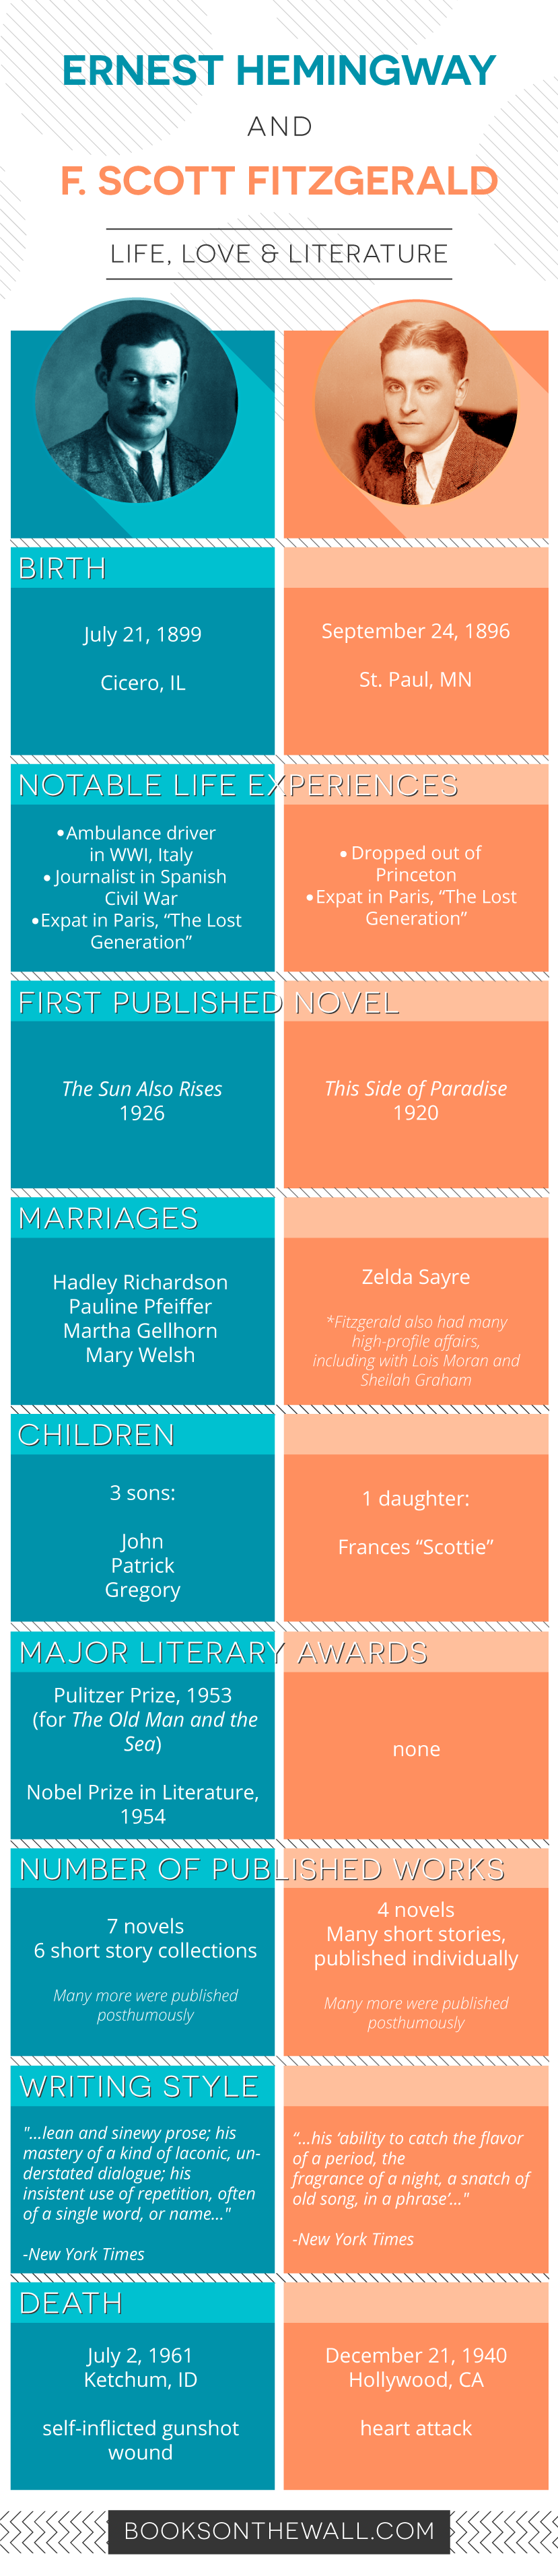 Hemingway and Fitzgerald infographic